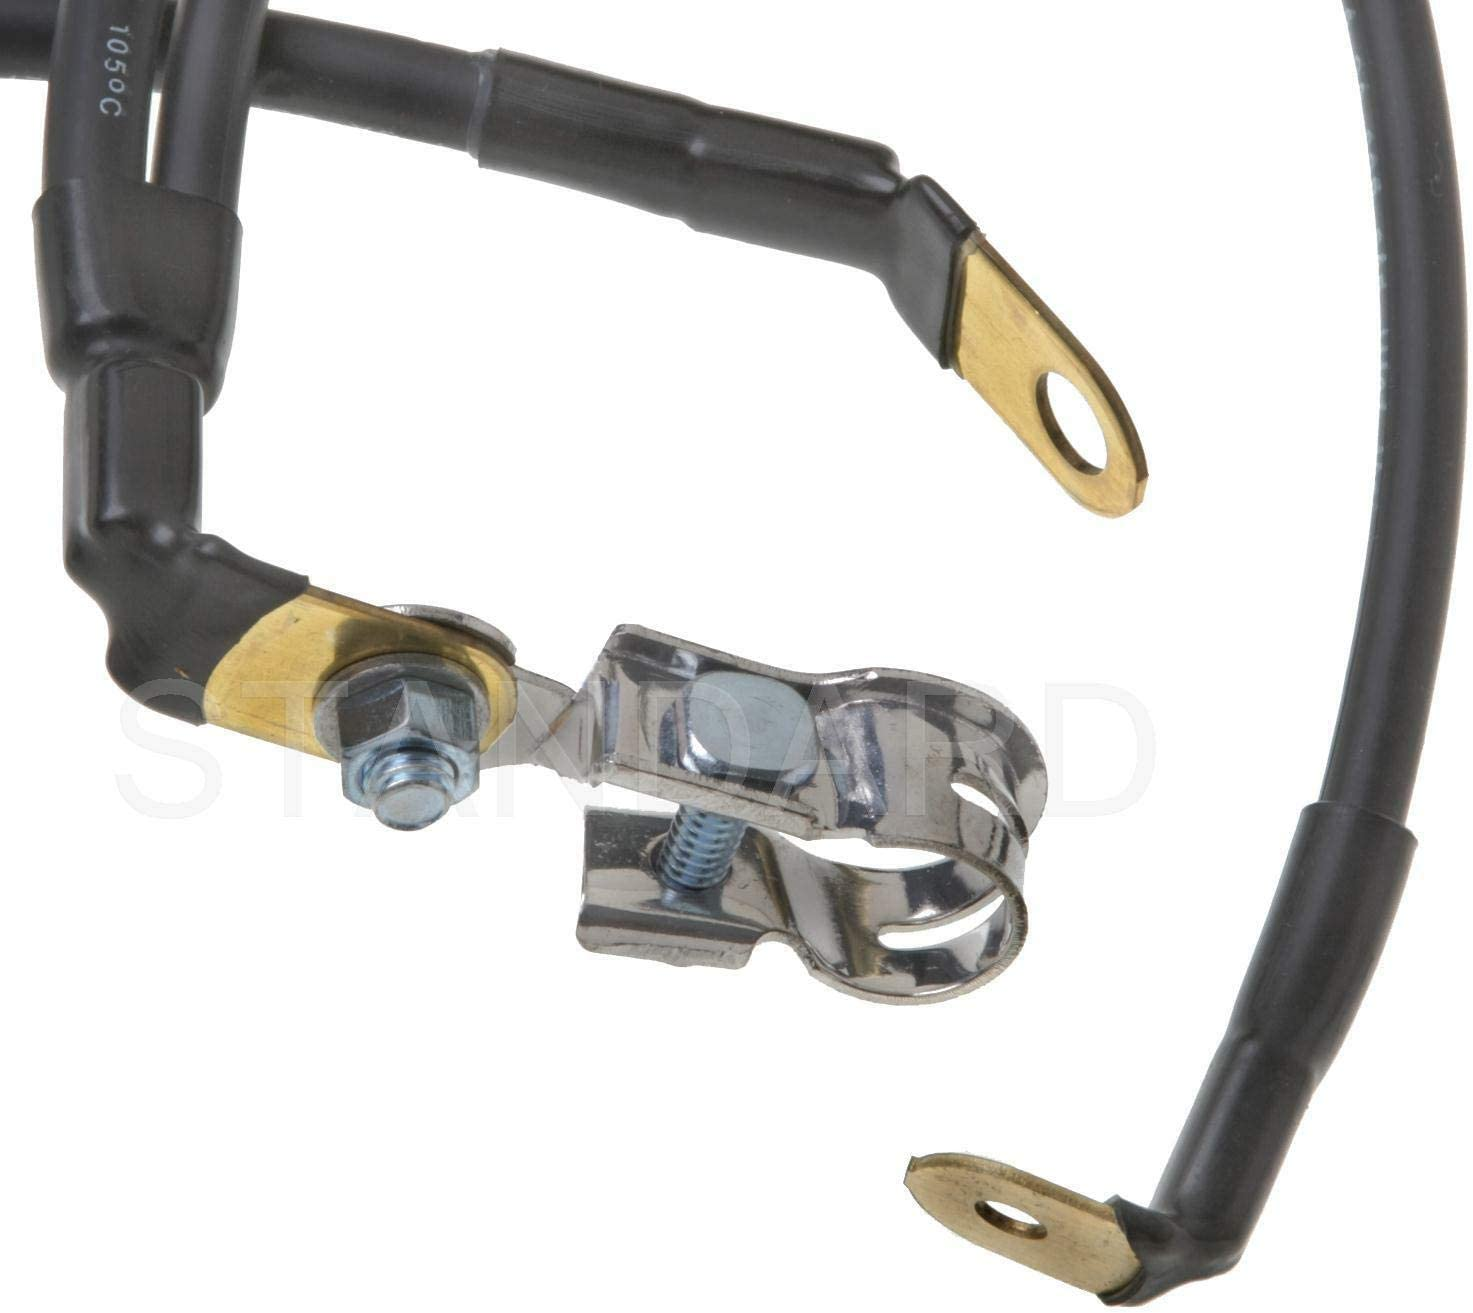 Standard Motor Products A38-2UHLC Battery Cable